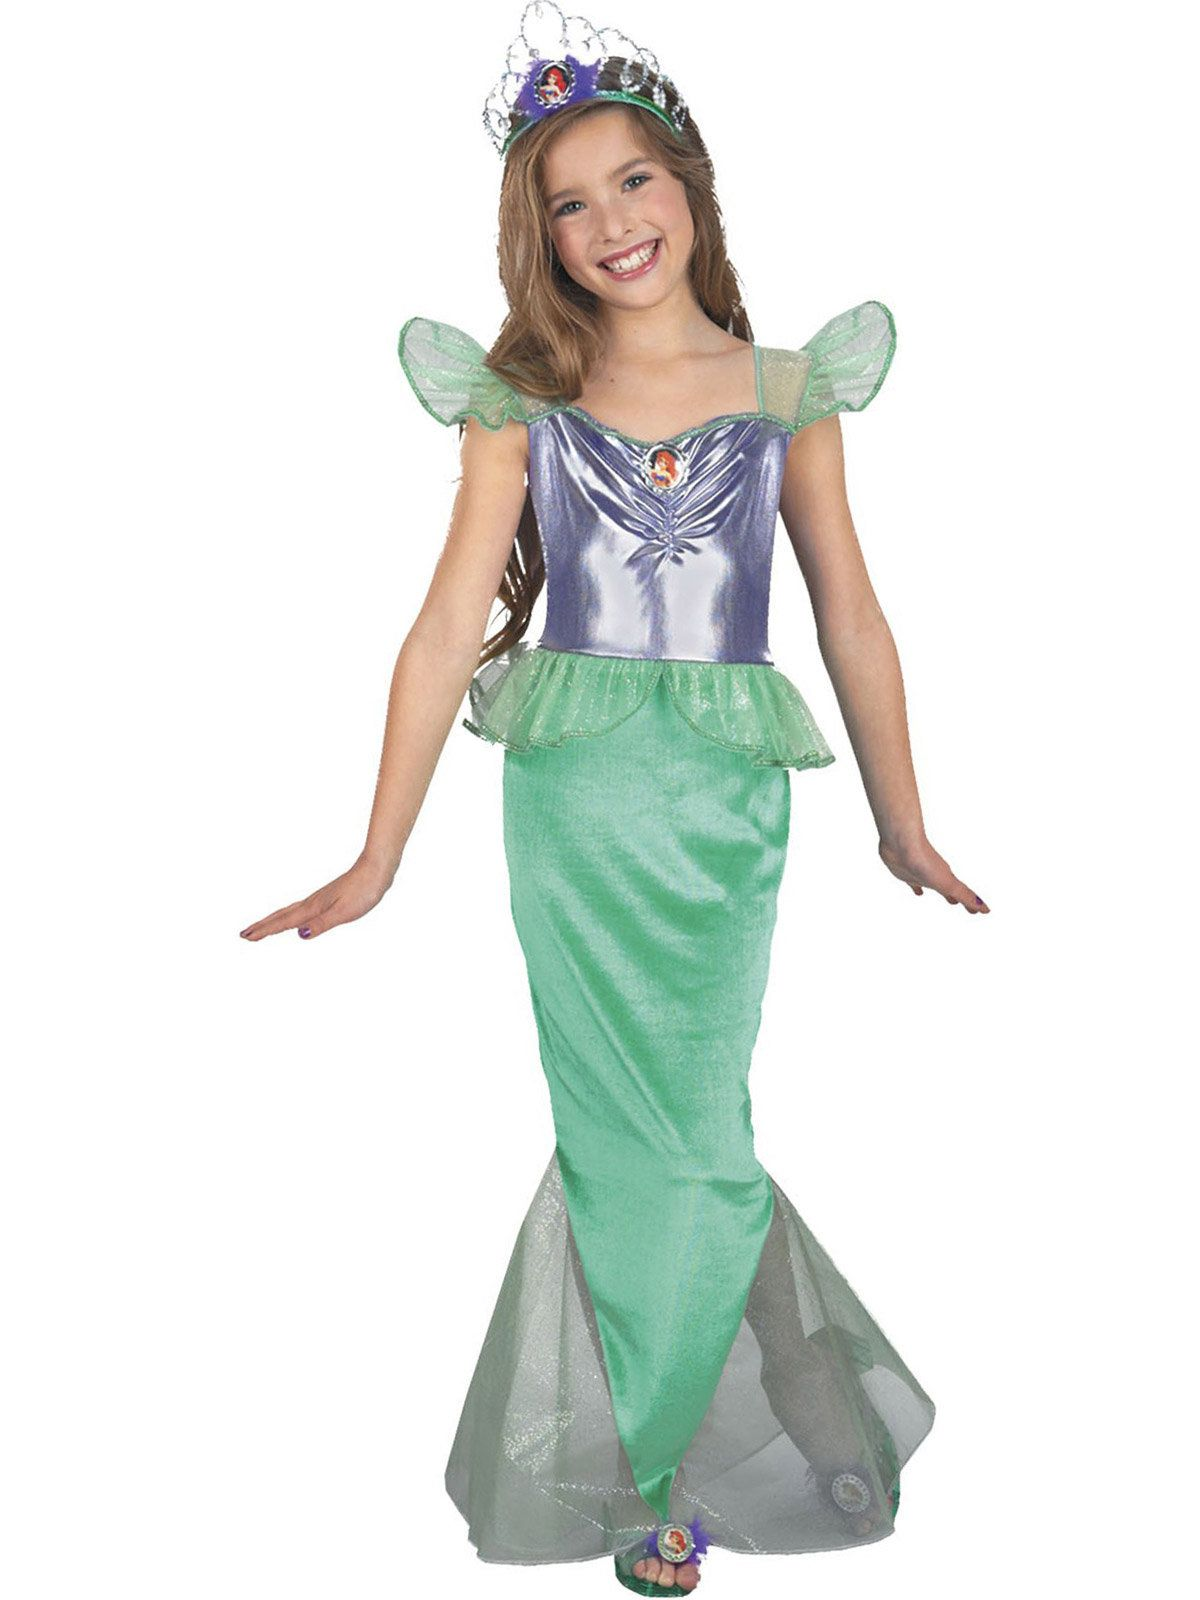 Ariel Little Mermaid Standard Child Complete Costume Kit - Small  sc 1 st  Wholesale Halloween Costumes & Ariel The Little Mermaid Costume - Disney Princess Girls Costumes